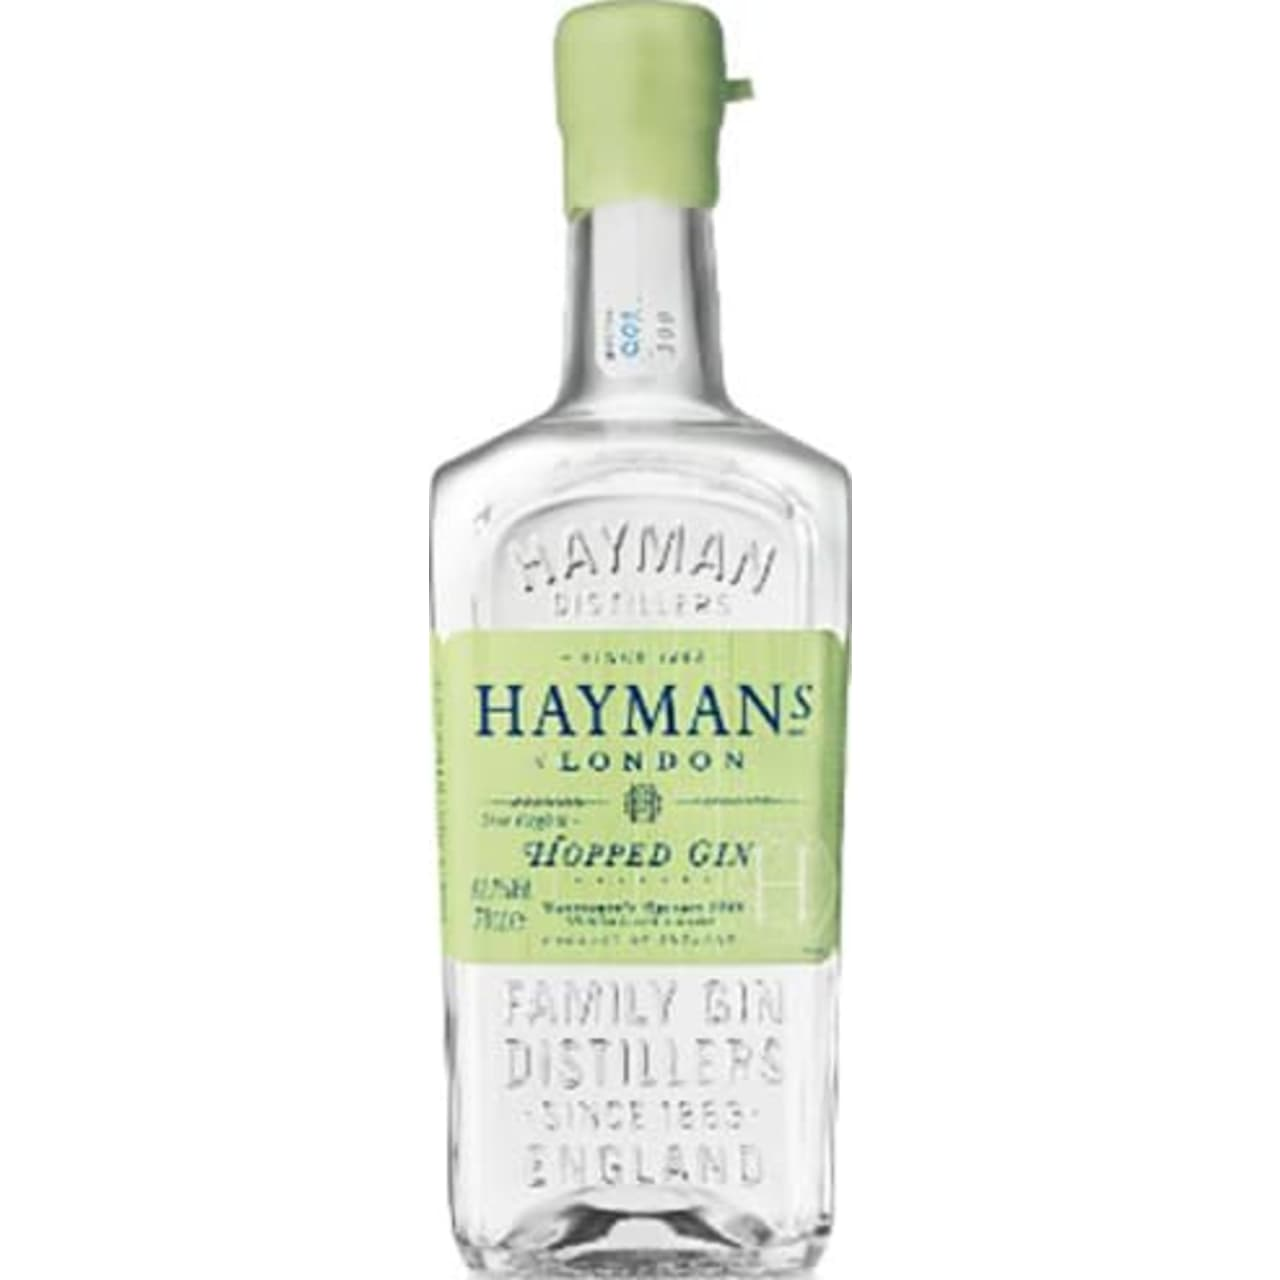 Product Image - Hayman's Hopped Gin - Bartender's Release 2019